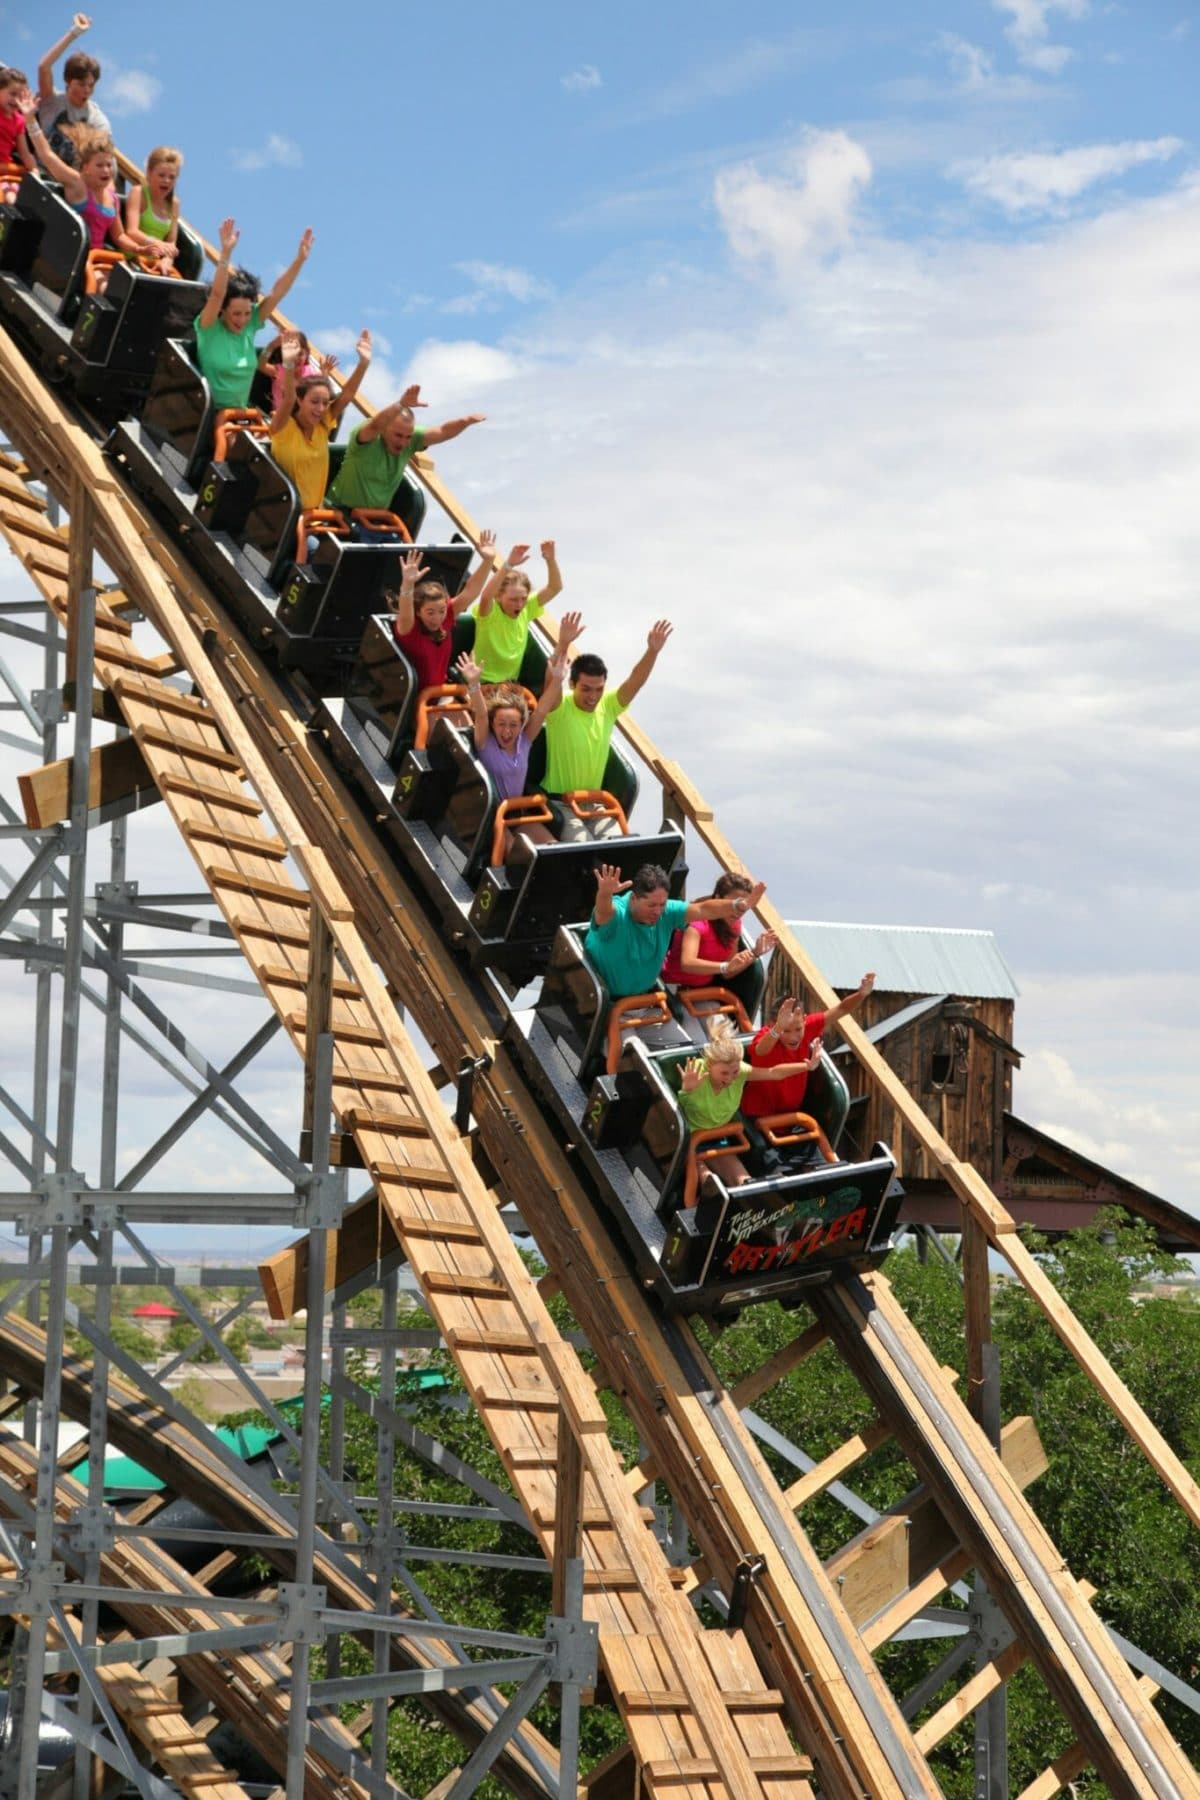 Rattler - Courtesy Cliff's Amusement Park